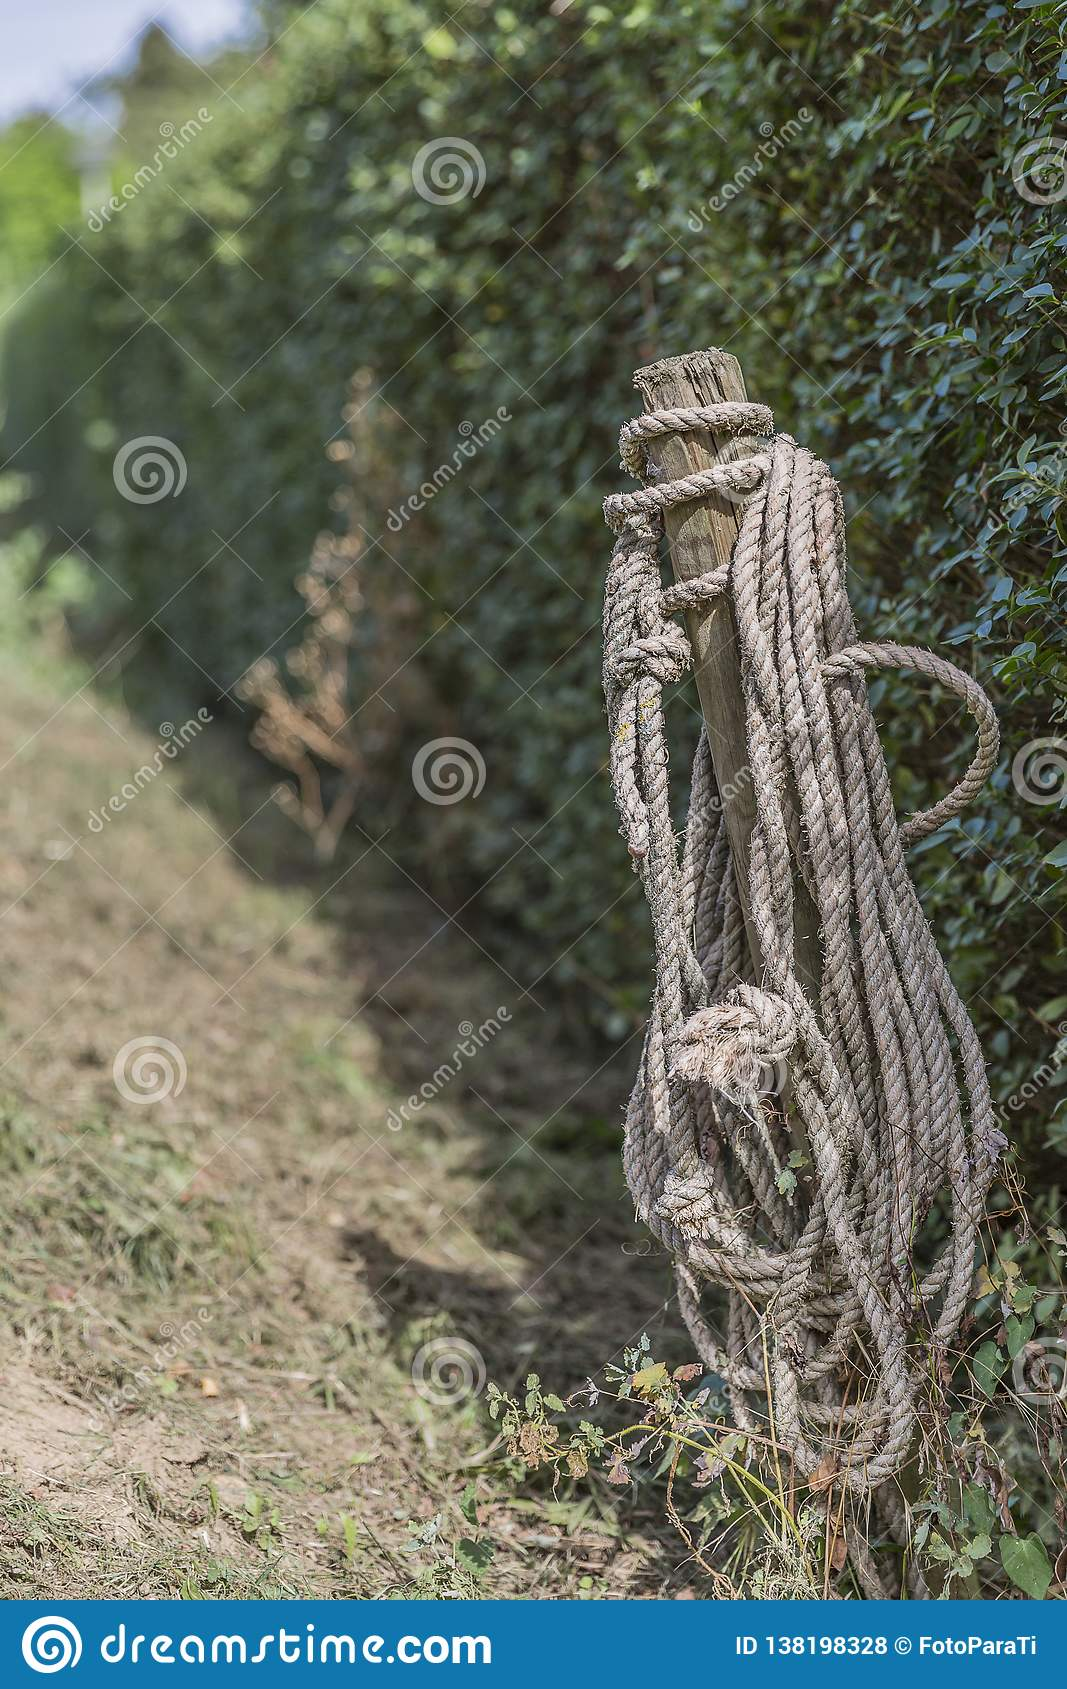 Image of a wooden pole with a rope with green vegetation background